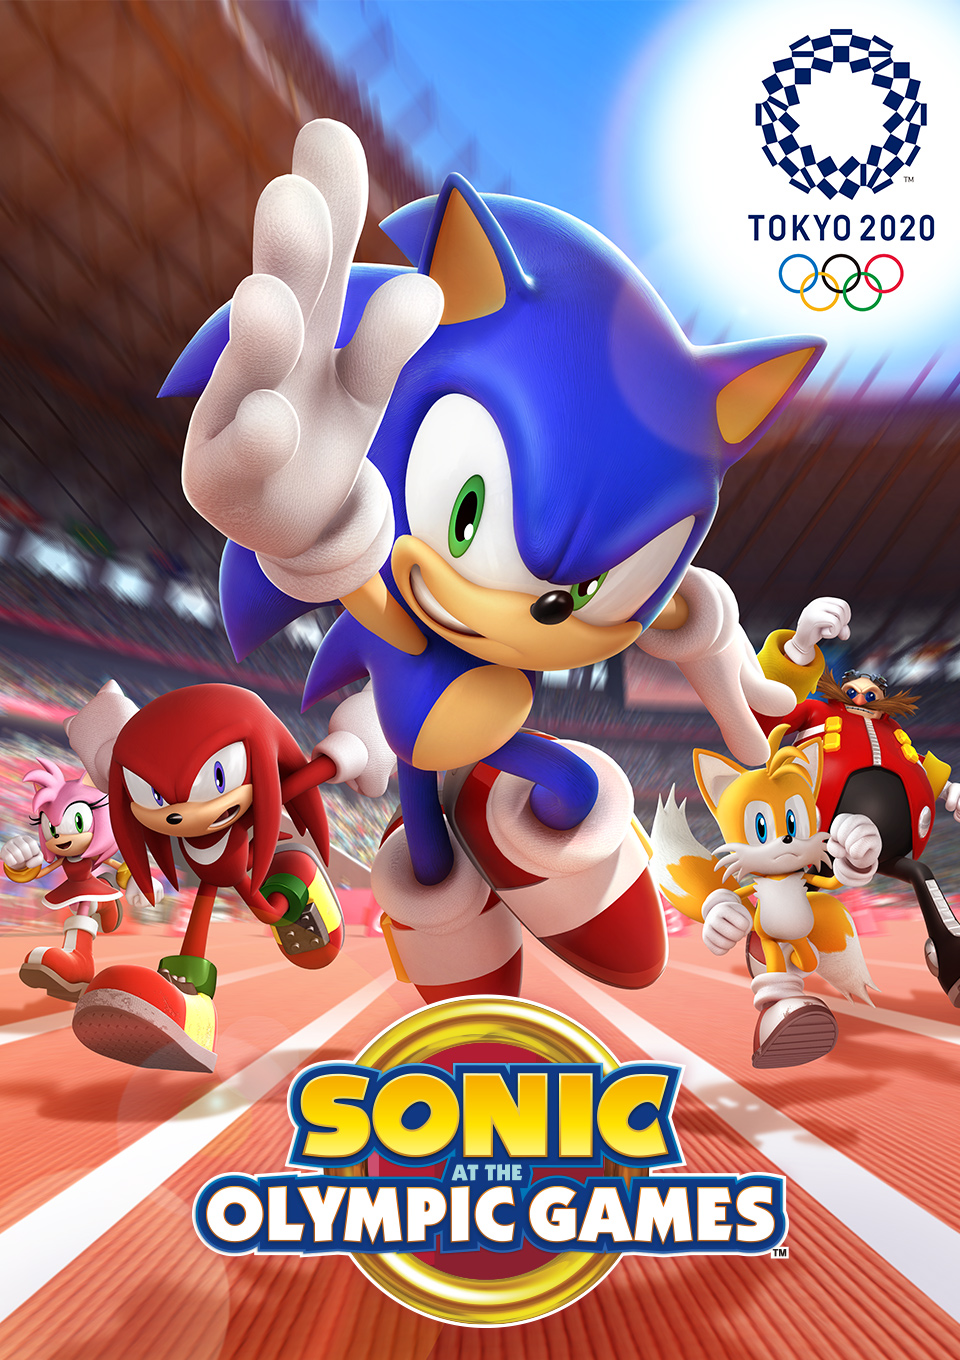 Best Ipad Games 2020.Sonic At The Olympic Games Tokyo2020 Official Website